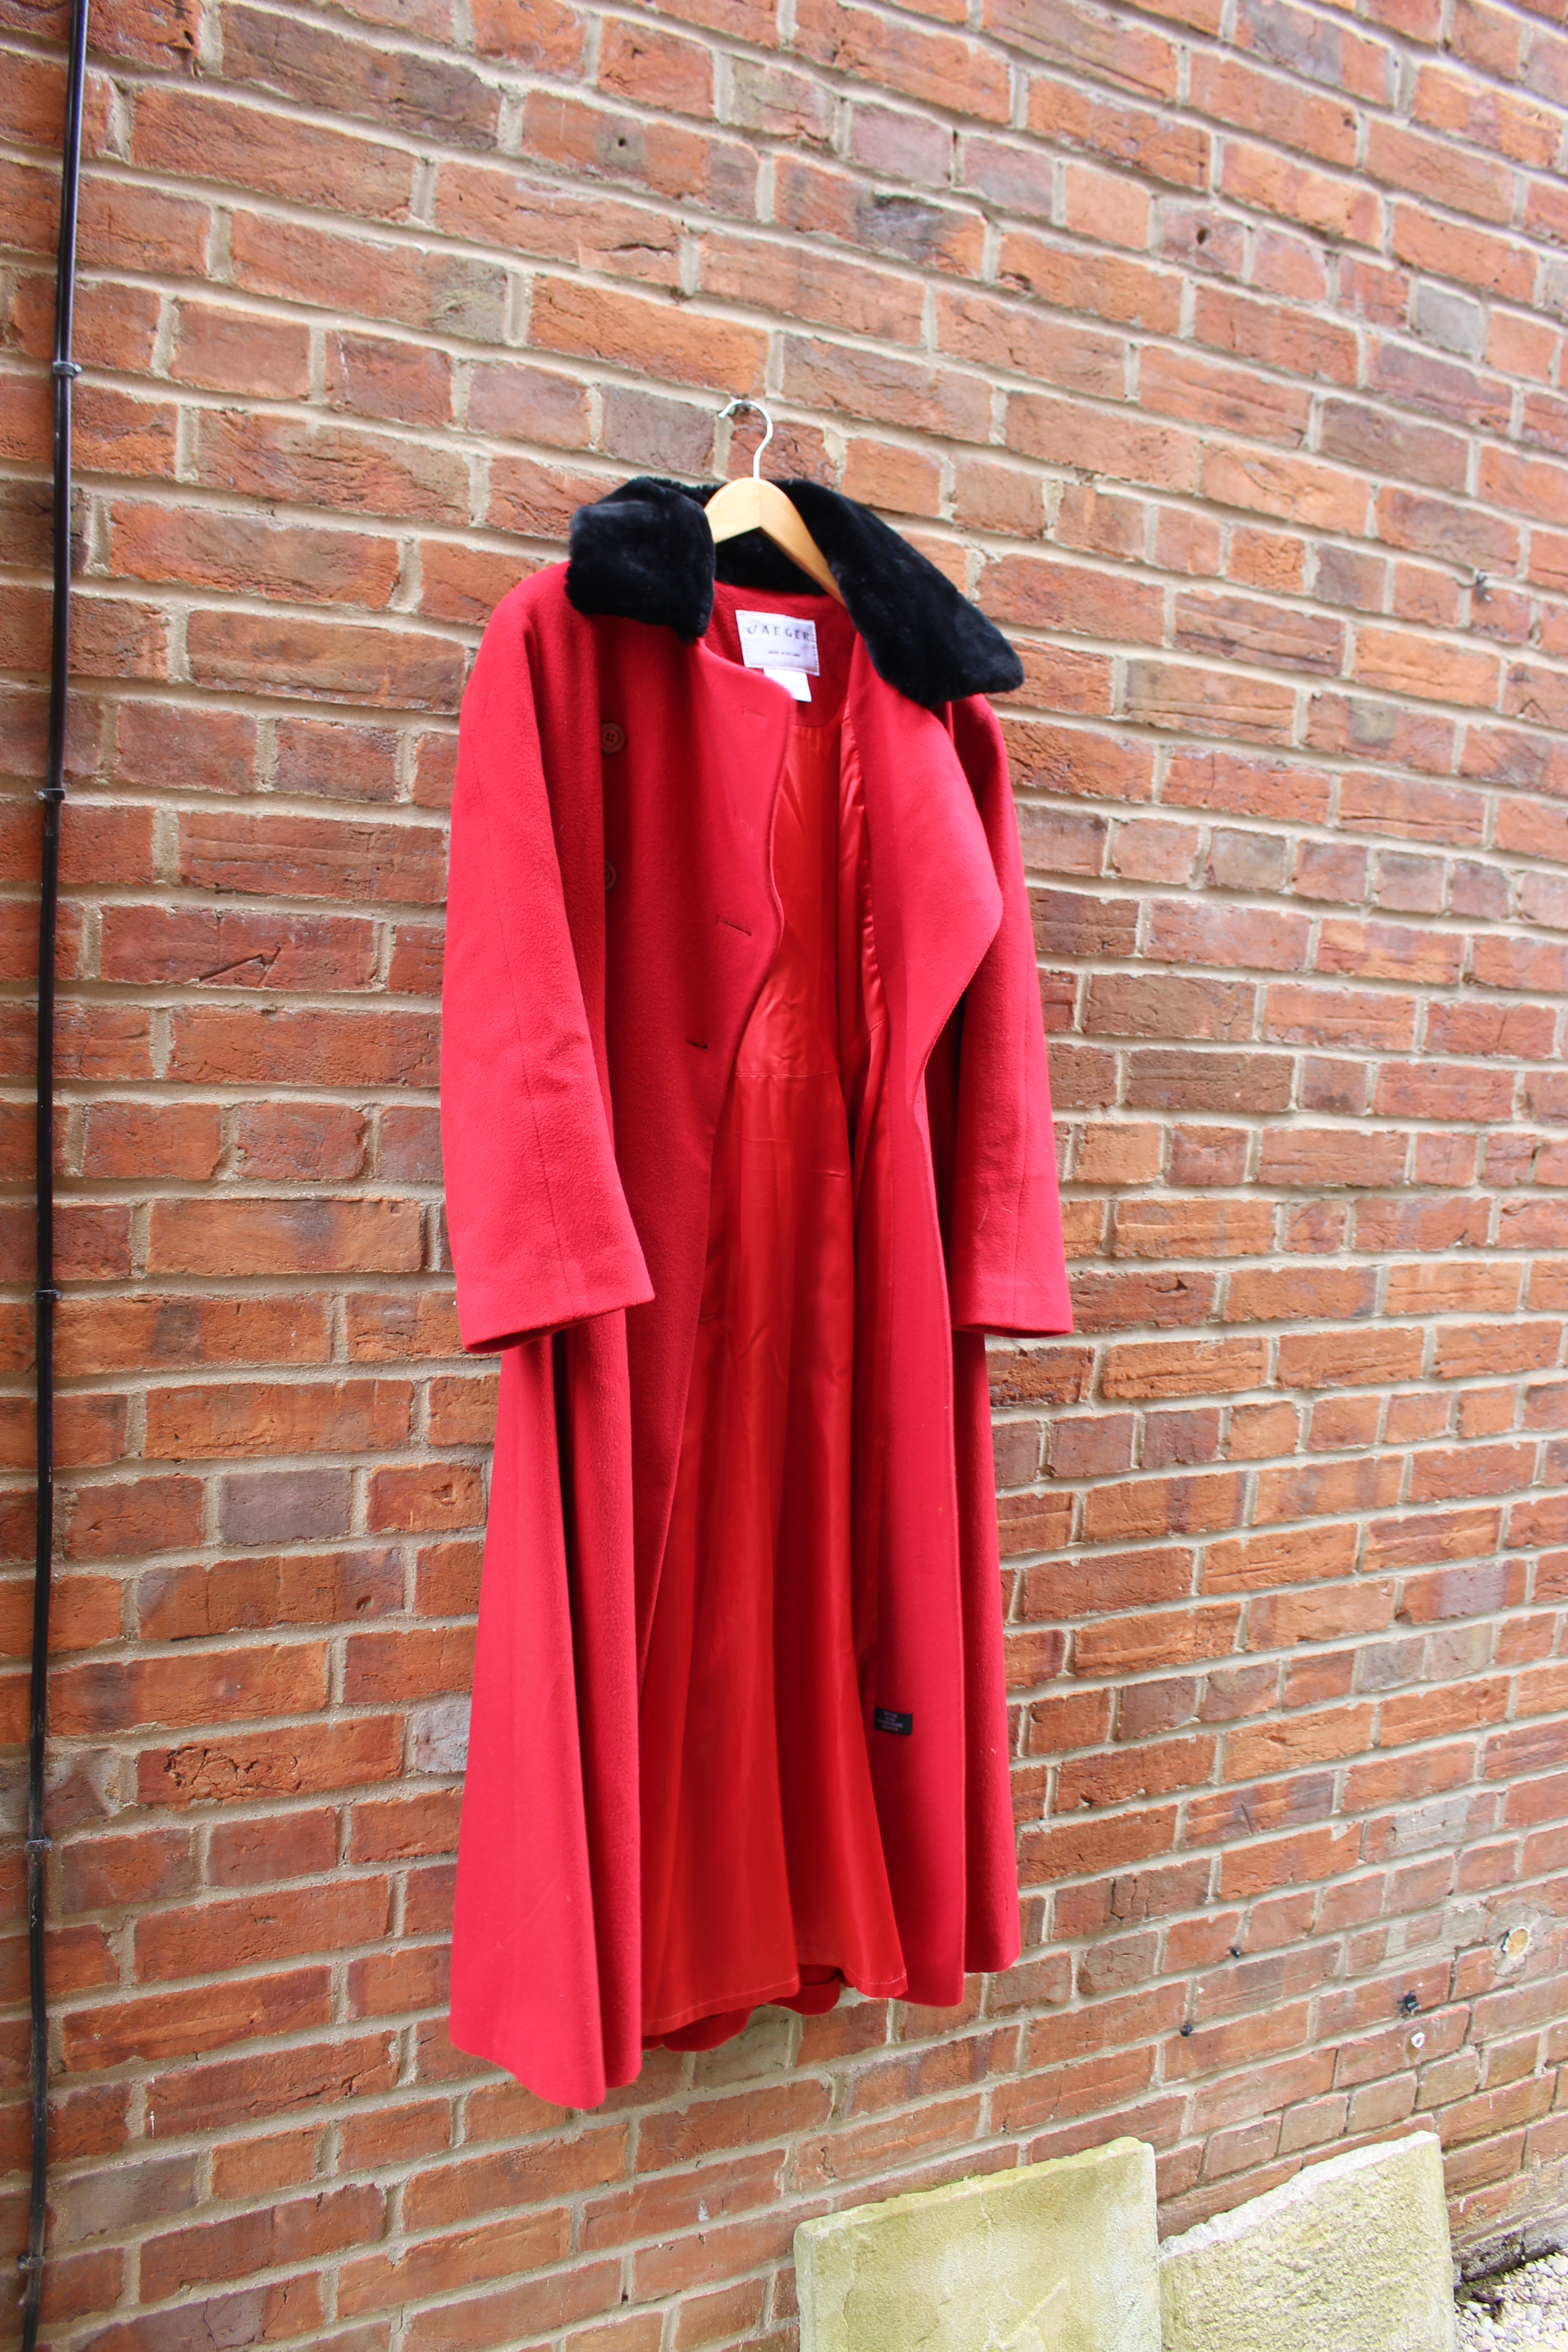 Jaeger red coat, from Unicorn, 5 Ship Street, Oxford